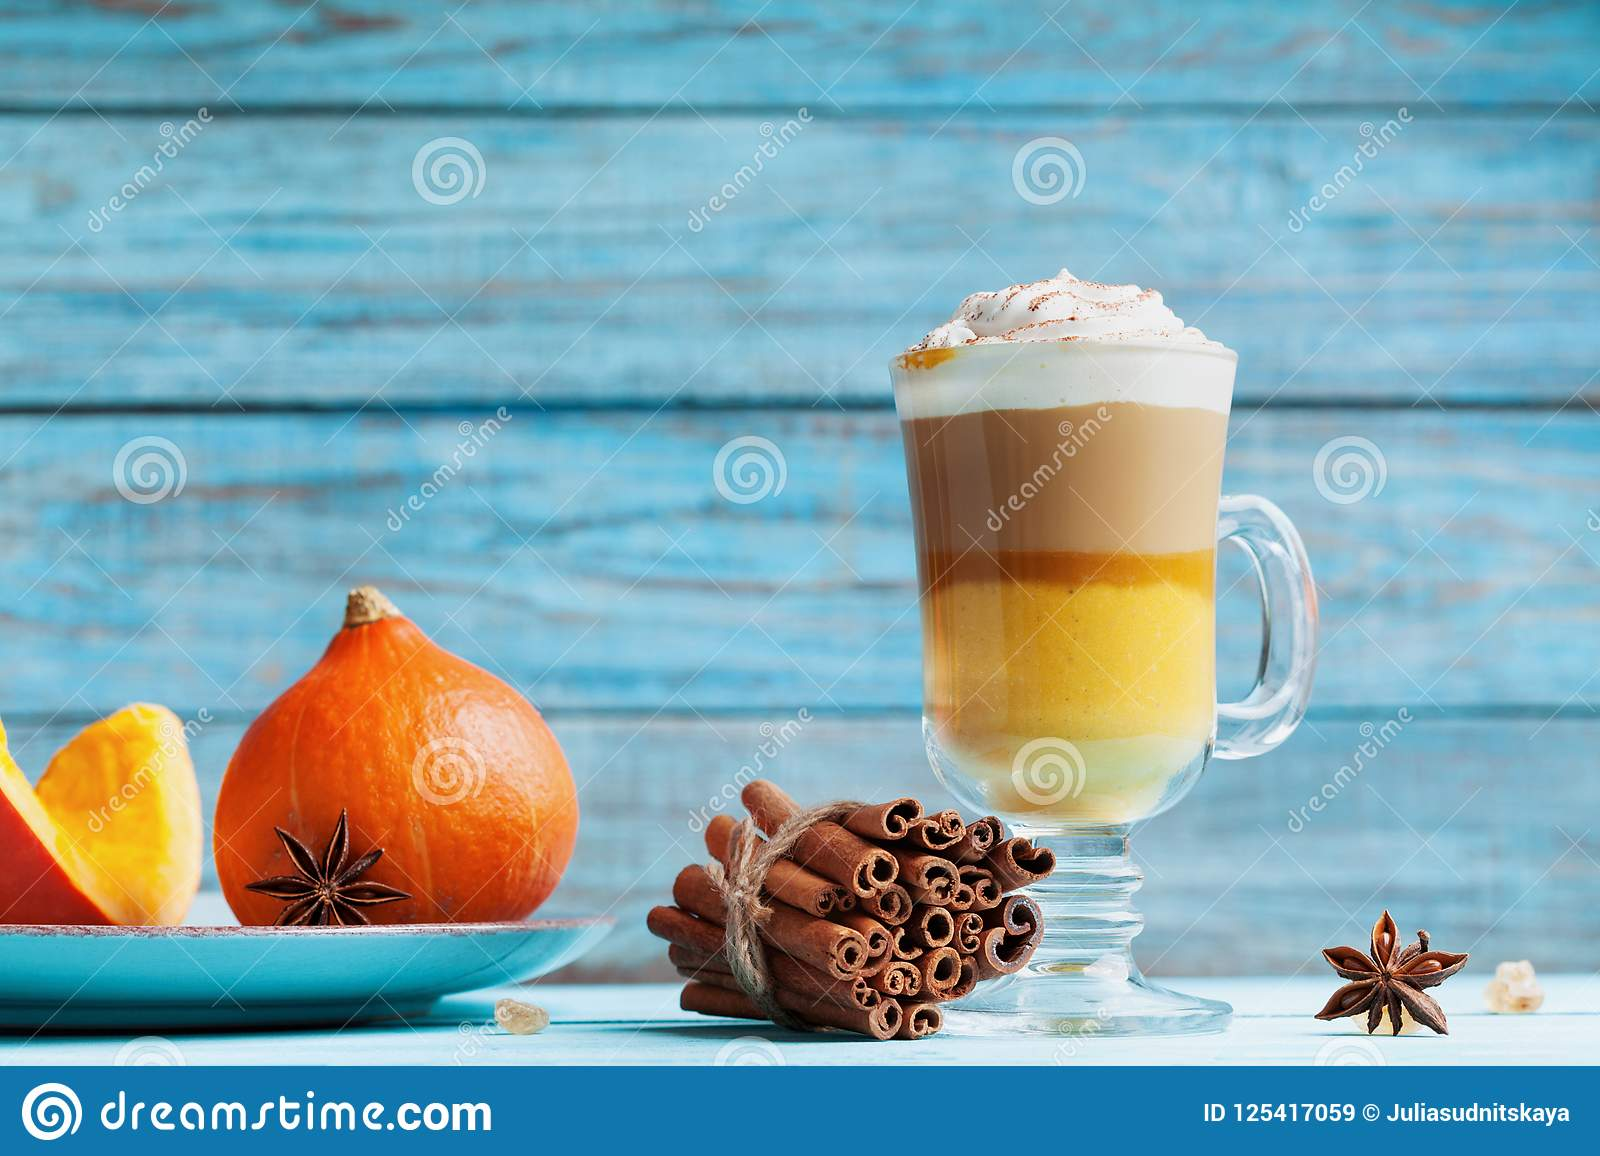 Pumpkin spiced latte or coffee in glass on turquoise rustic table. Autumn, fall or winter hot drink.